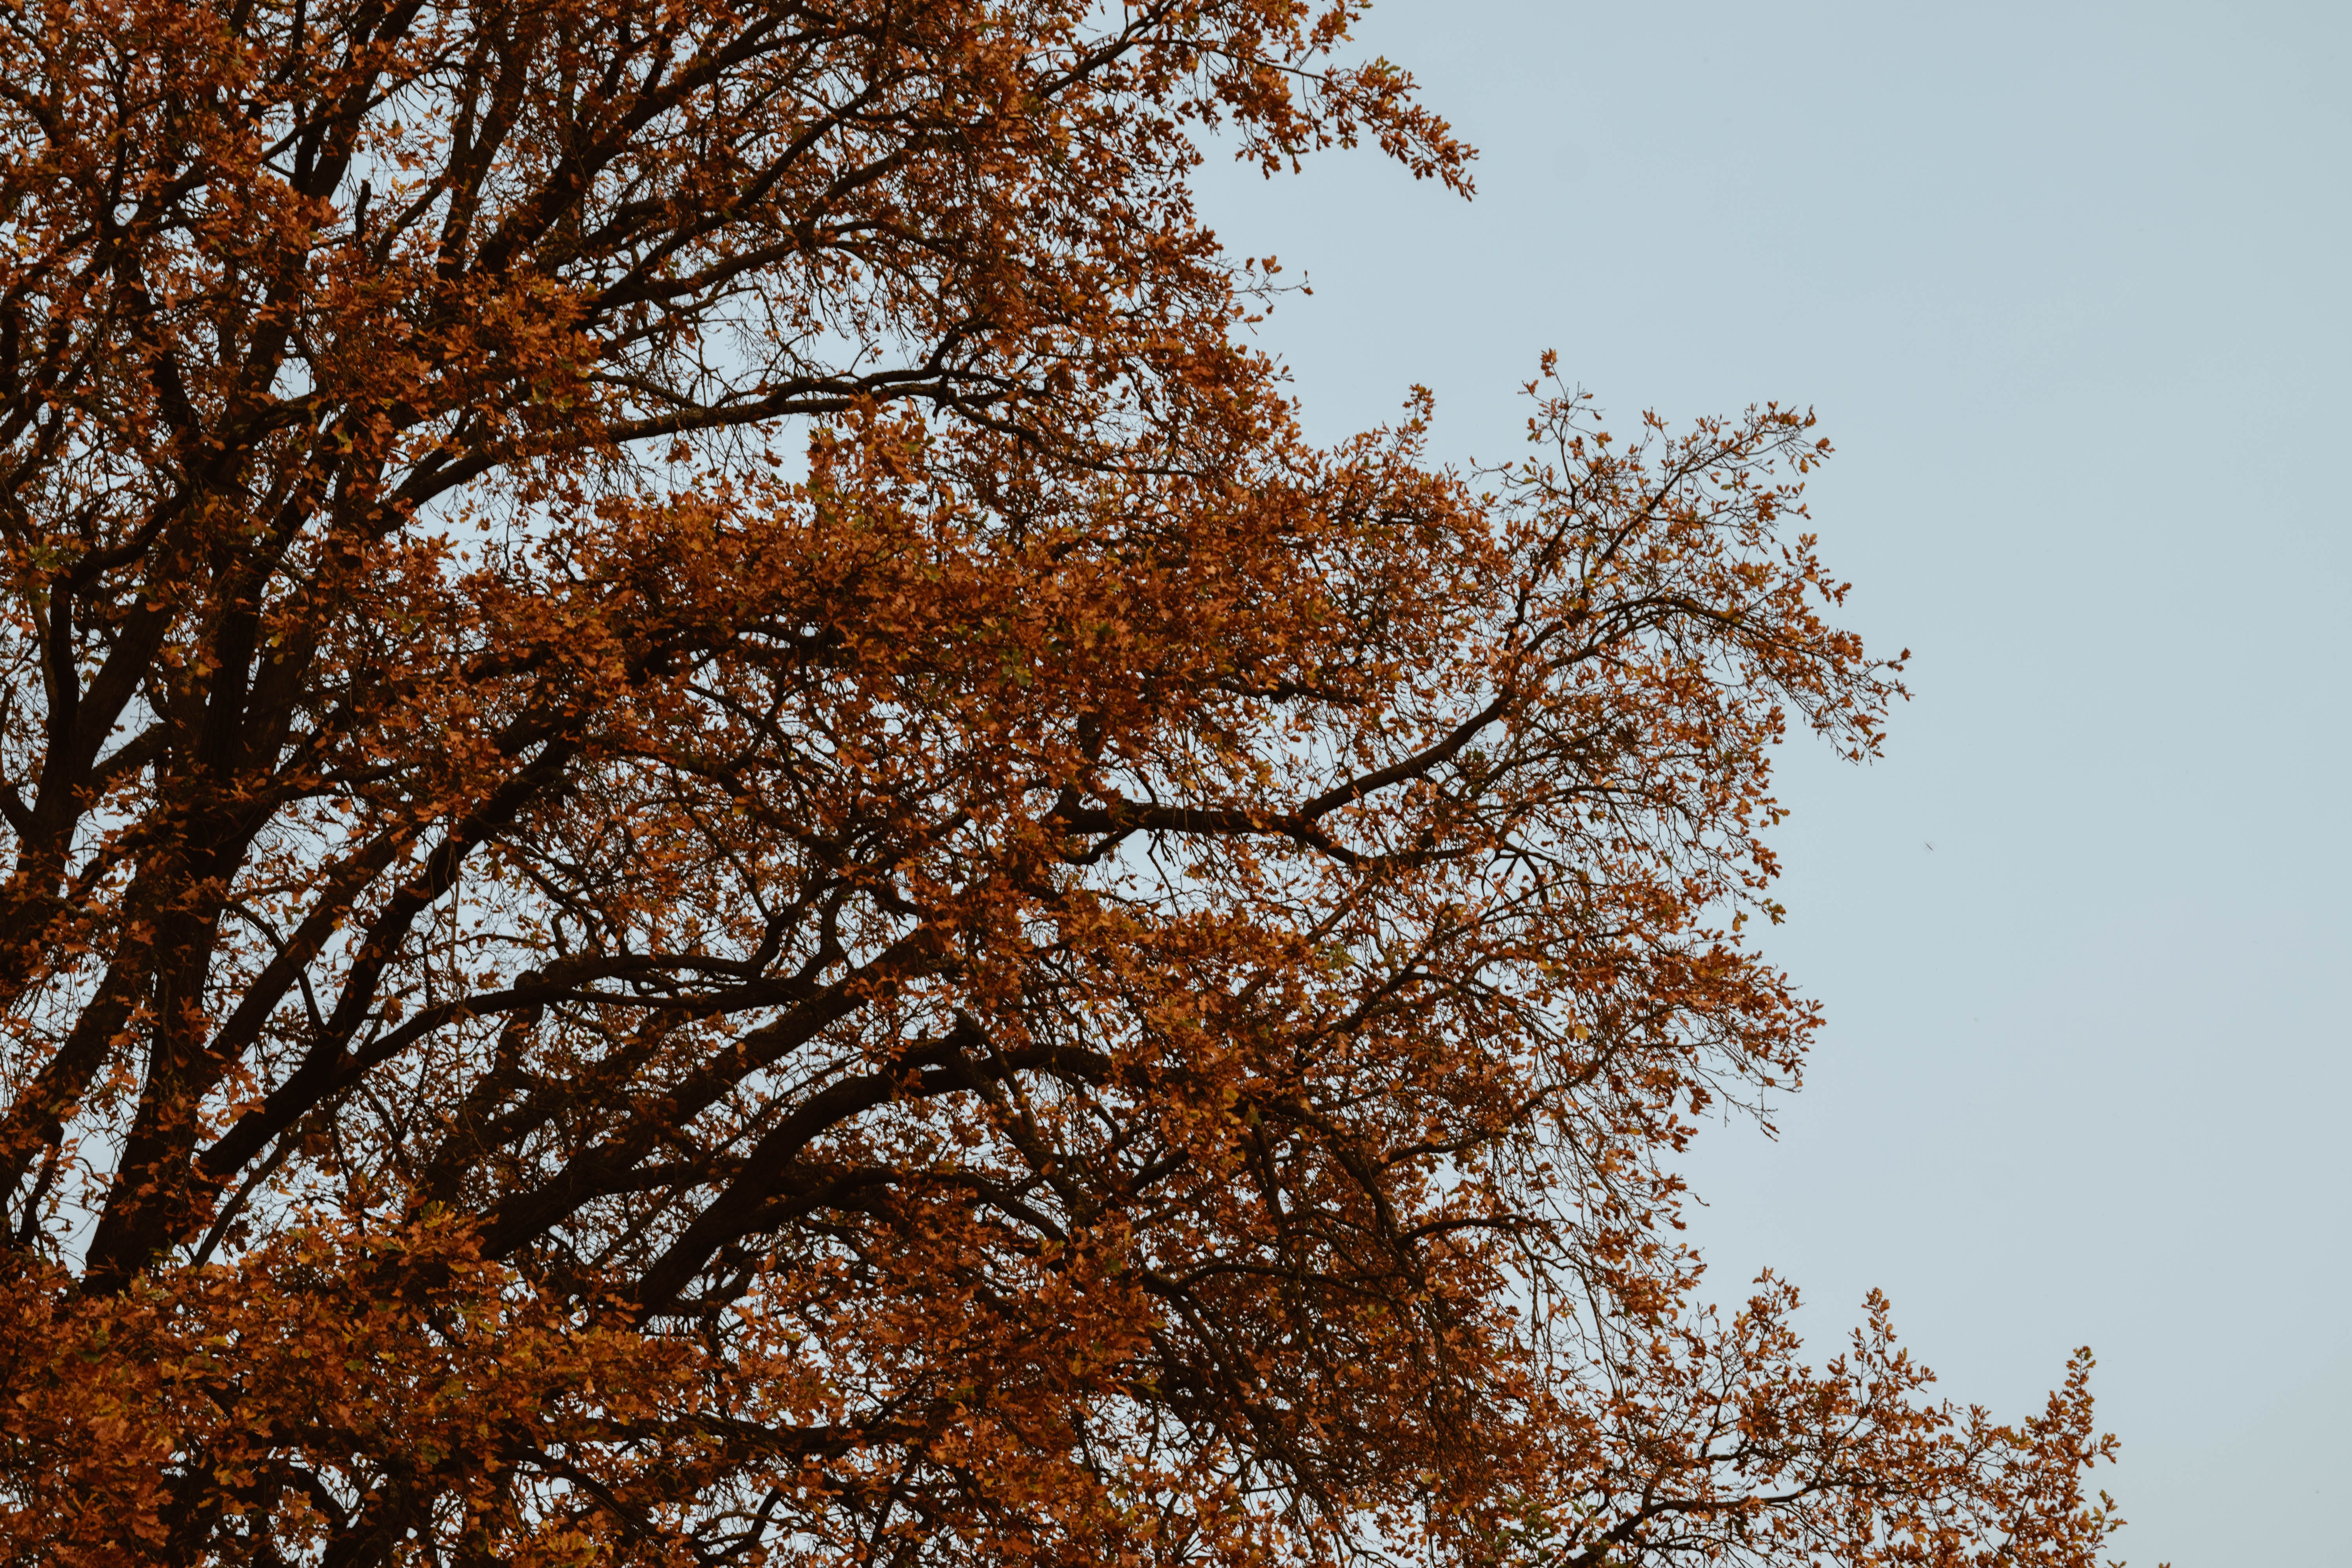 Free stock photo of nature, branches, tree, autumn